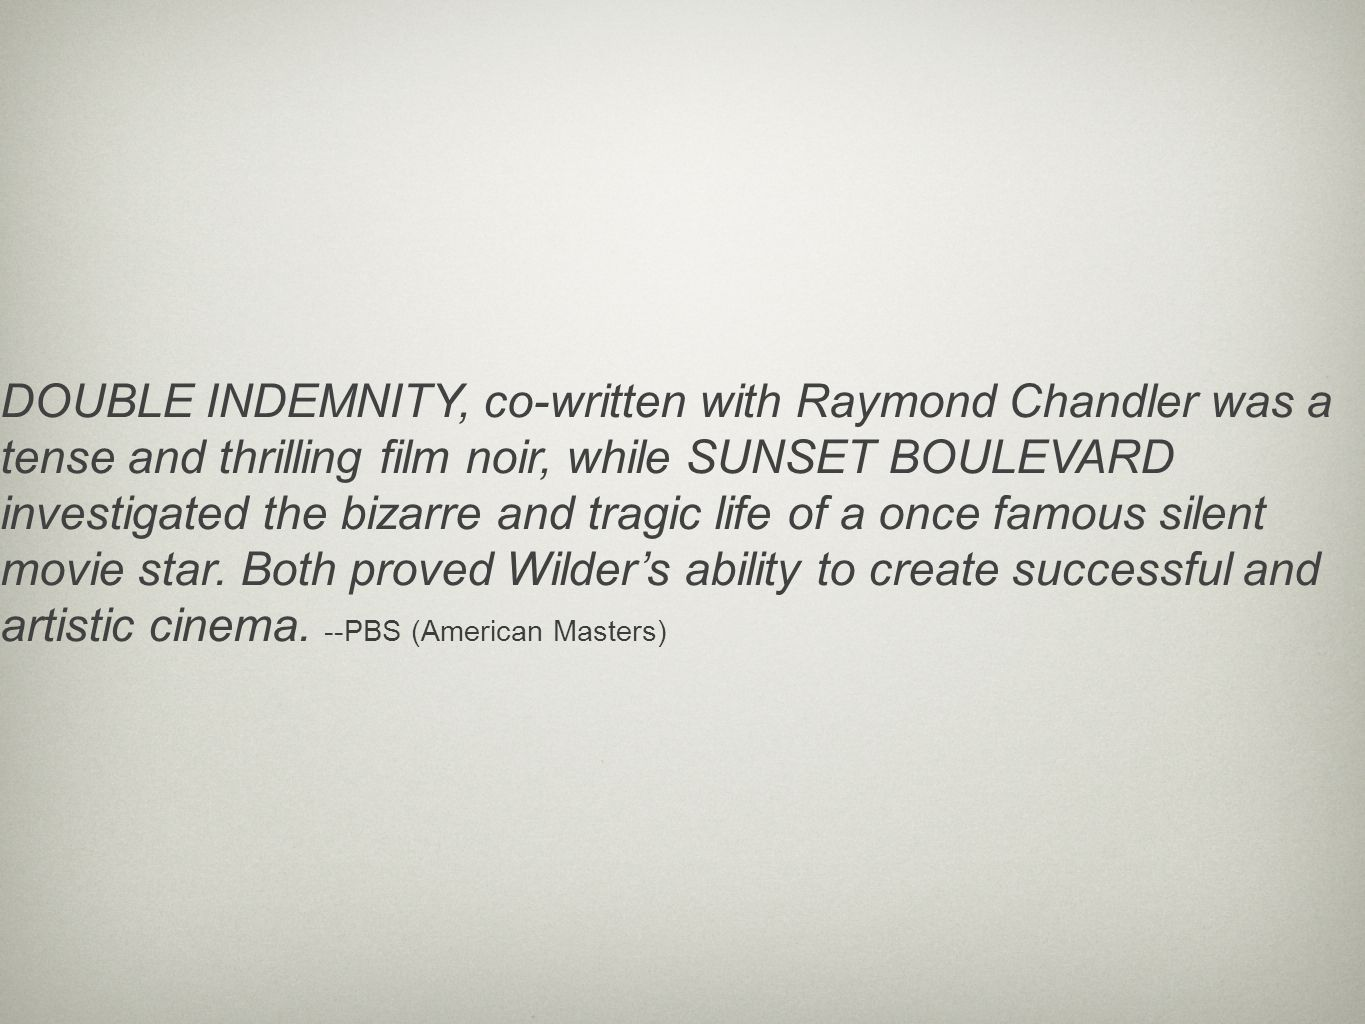 DOUBLE INDEMNITY, co-written with Raymond Chandler was a tense and thrilling film noir, while SUNSET BOULEVARD investigated the bizarre and tragic life of a once famous silent movie star.